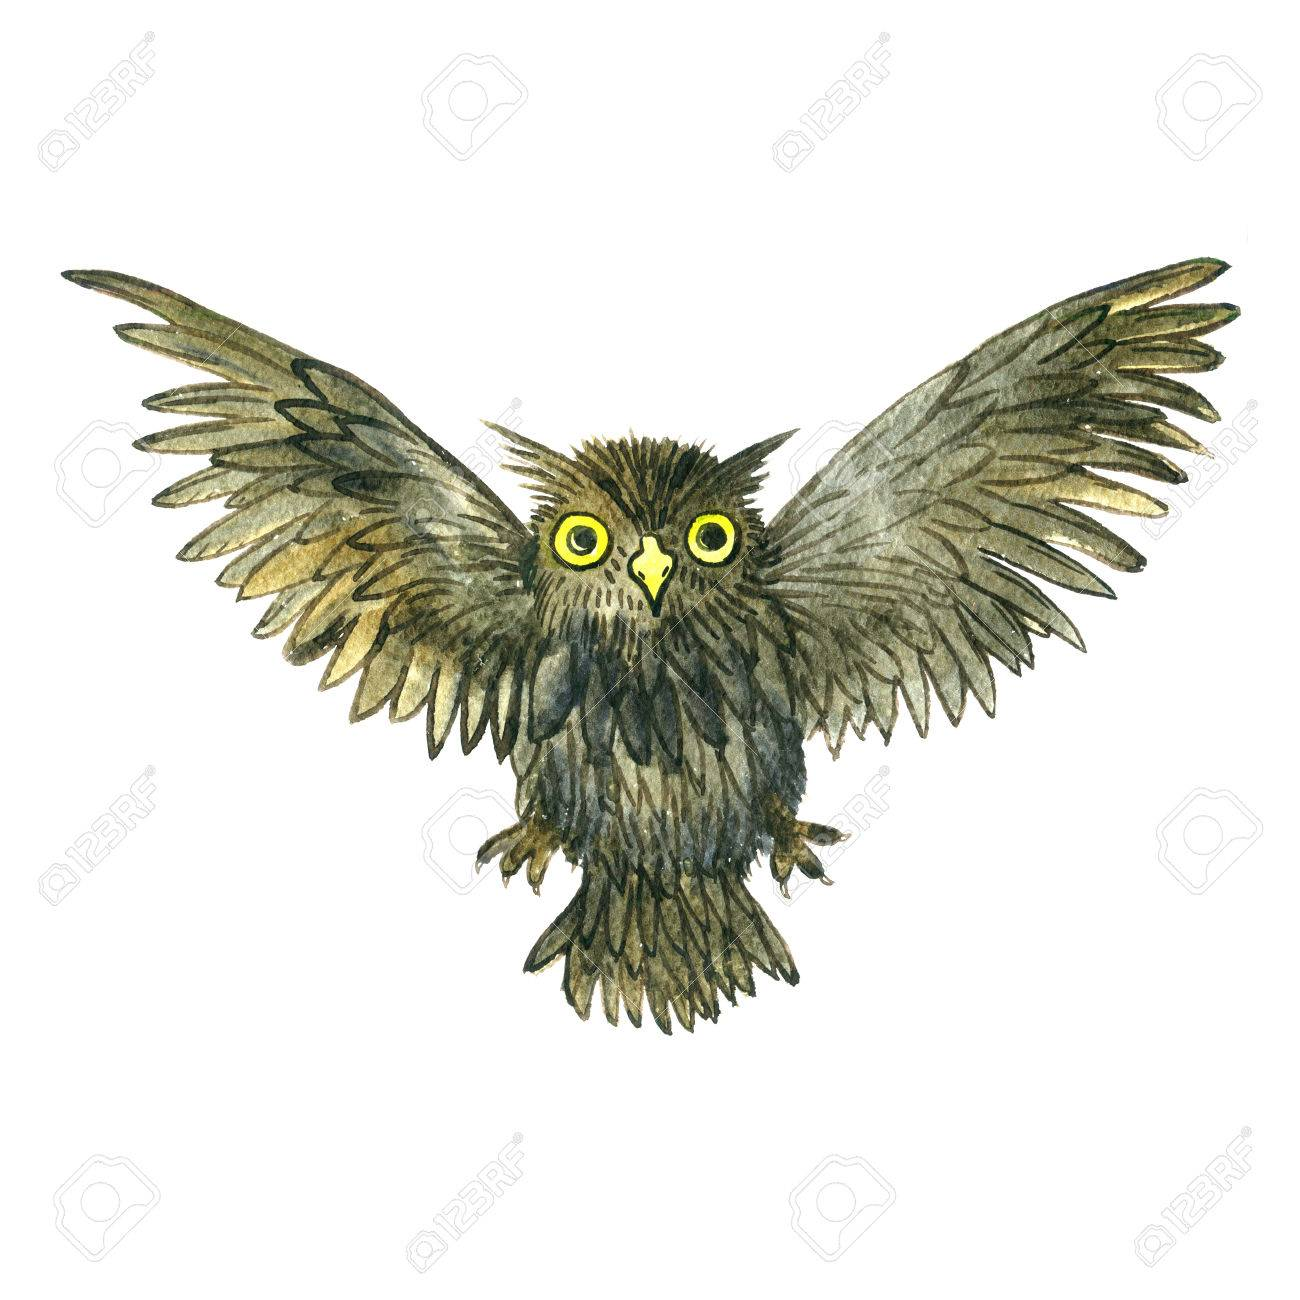 watercolor cartoon flying doodle owl drawing bird isolated at white background hand drawn illustrtion